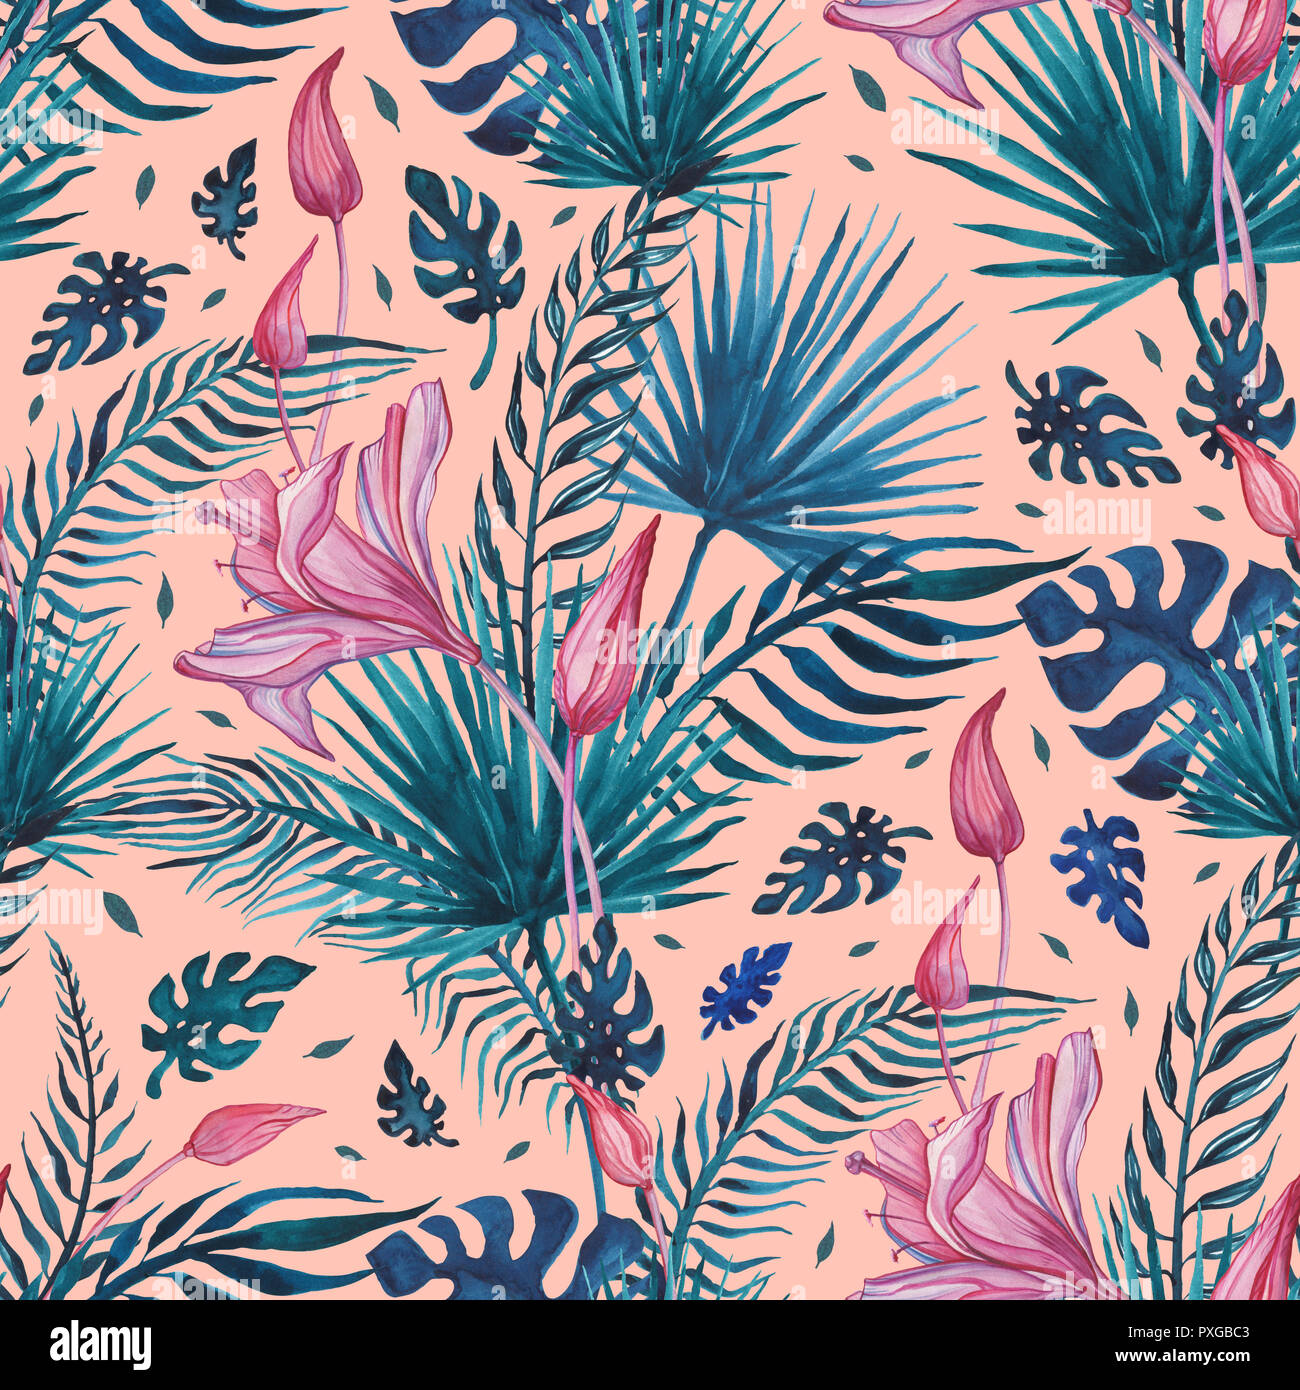 Tropical Flowers Abstract Flower Hand Drawn Floral Pattern